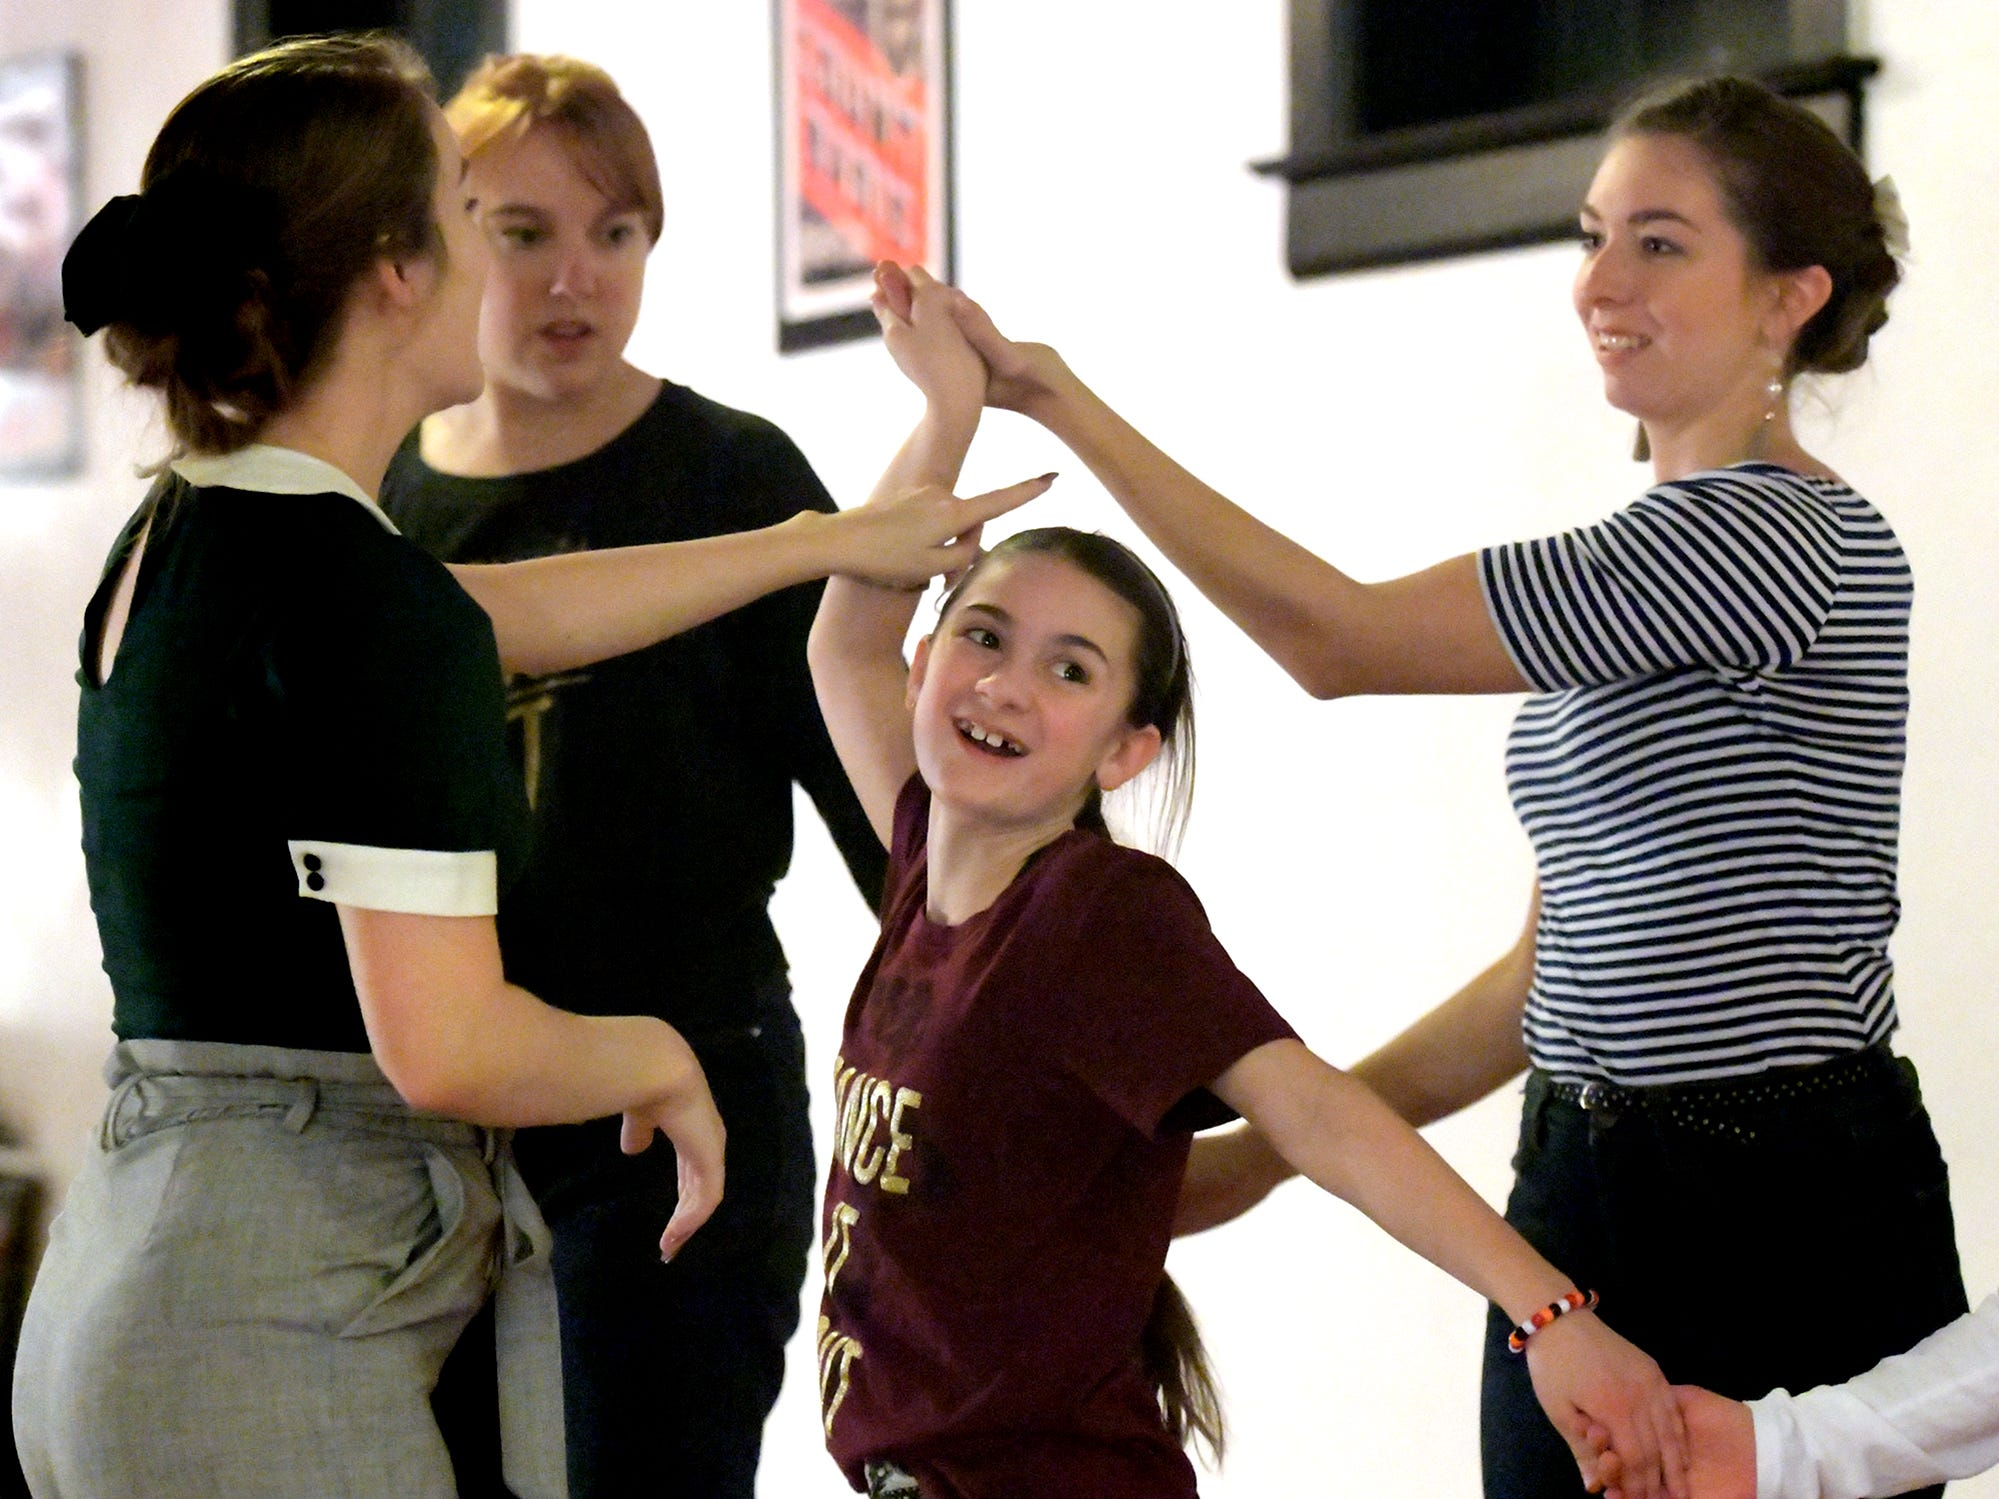 Sasha Malone, 11, of Manchester Township, center, practices a dance routine during a Vintage Chorus Line class at Victrola Dance Hall in York City Tuesday, Nov. 20, 2018. She was joined by, from left, Victrola Dance Hall owner and instructor Randi Stauffer and Jennifer Reddig and Mary Ludwig, both of Lititz. Bill Kalina photo